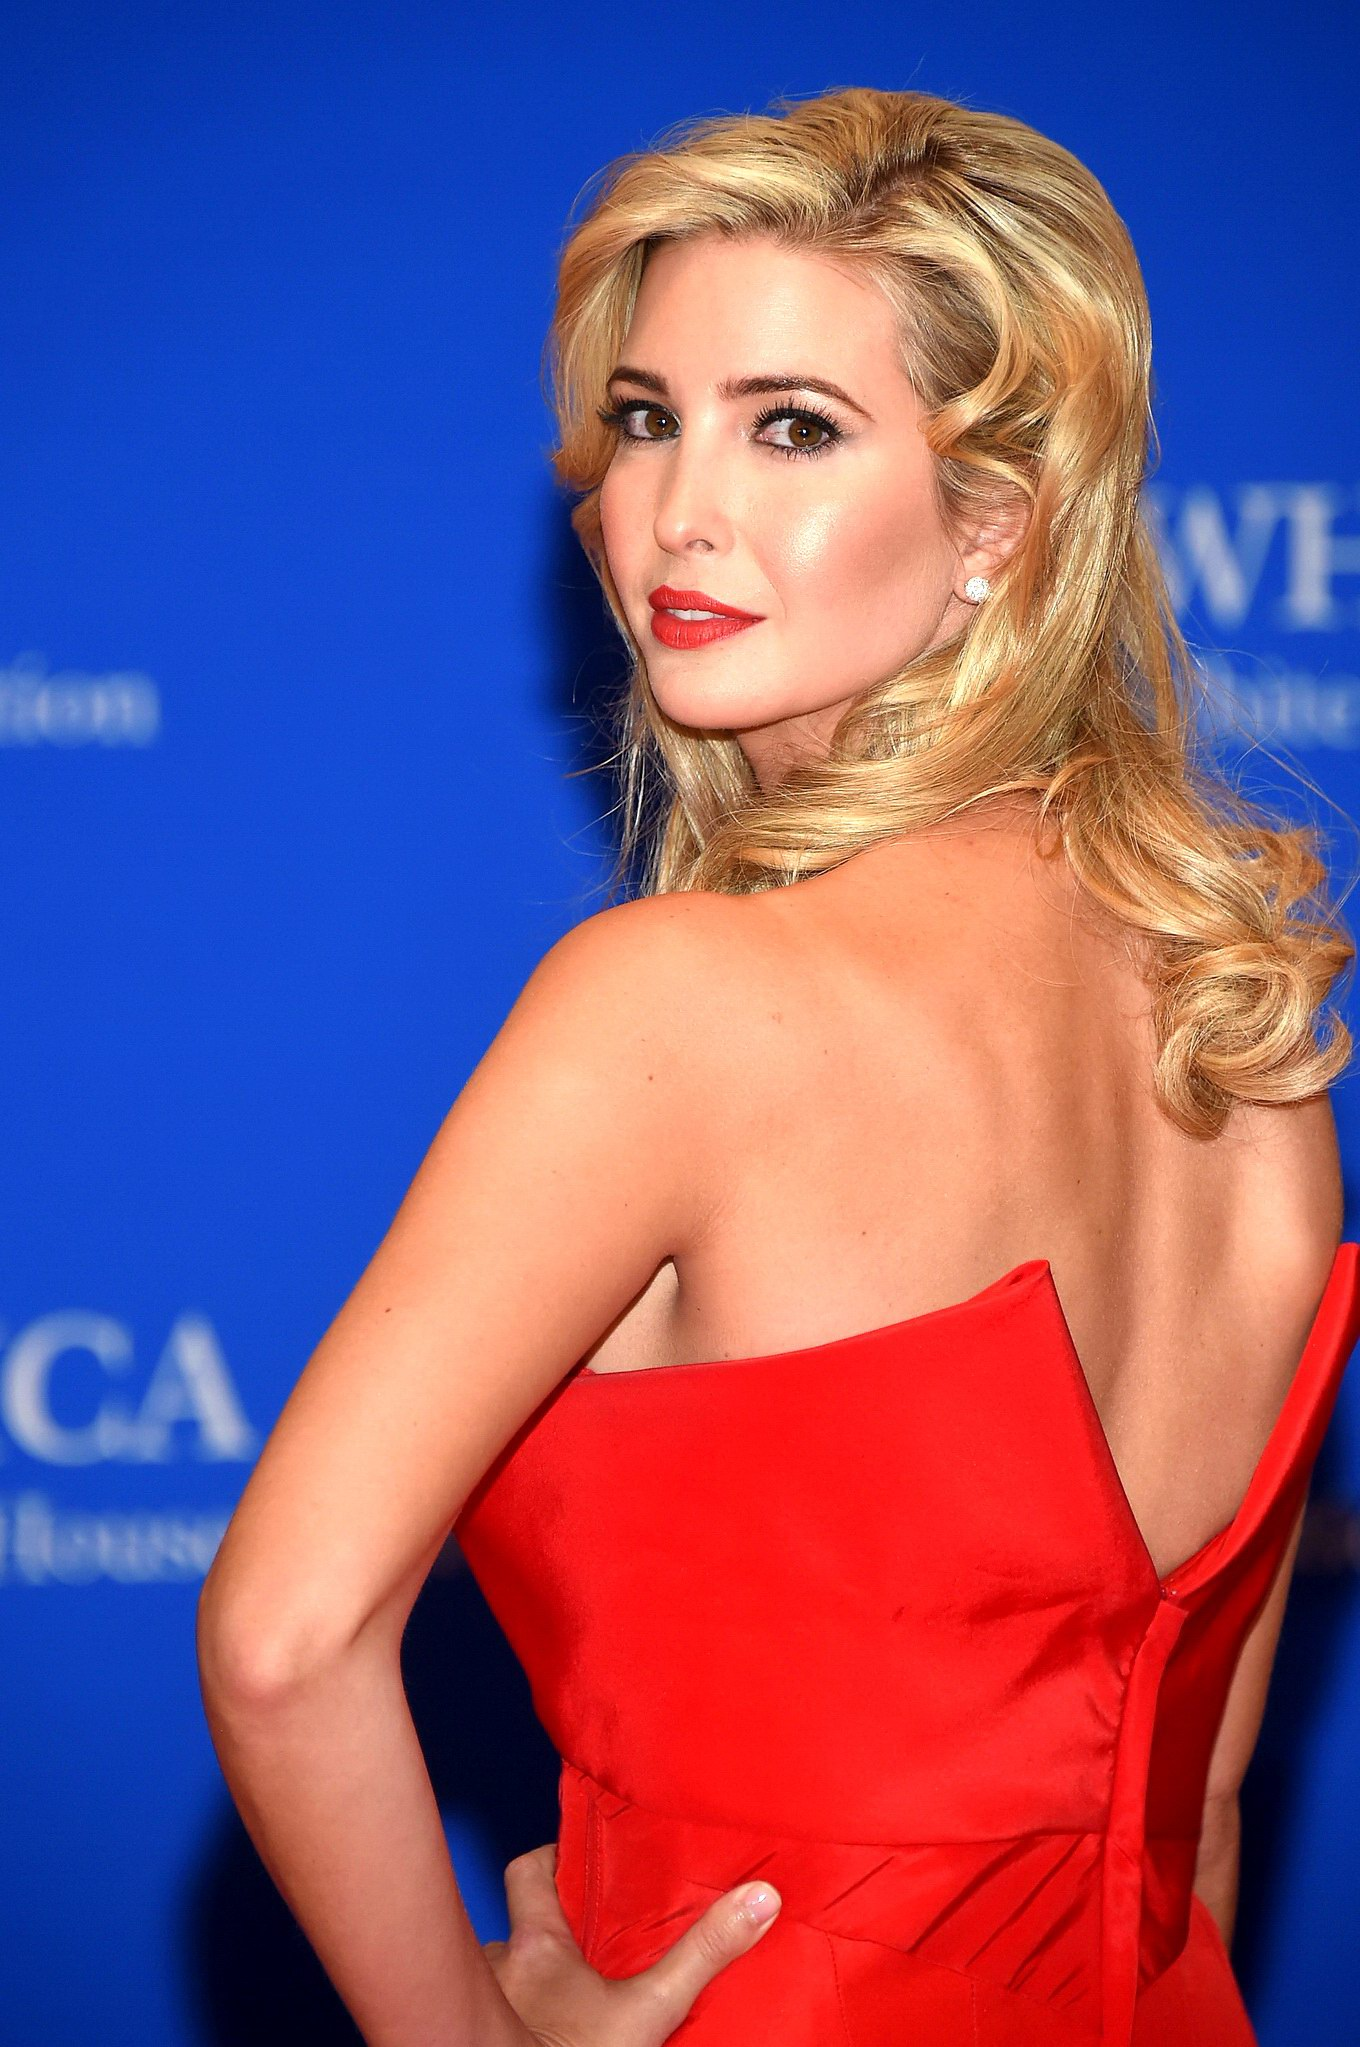 Ivanka Trump shows huge cleavage wearing a strapless red ... Ivanka Trump